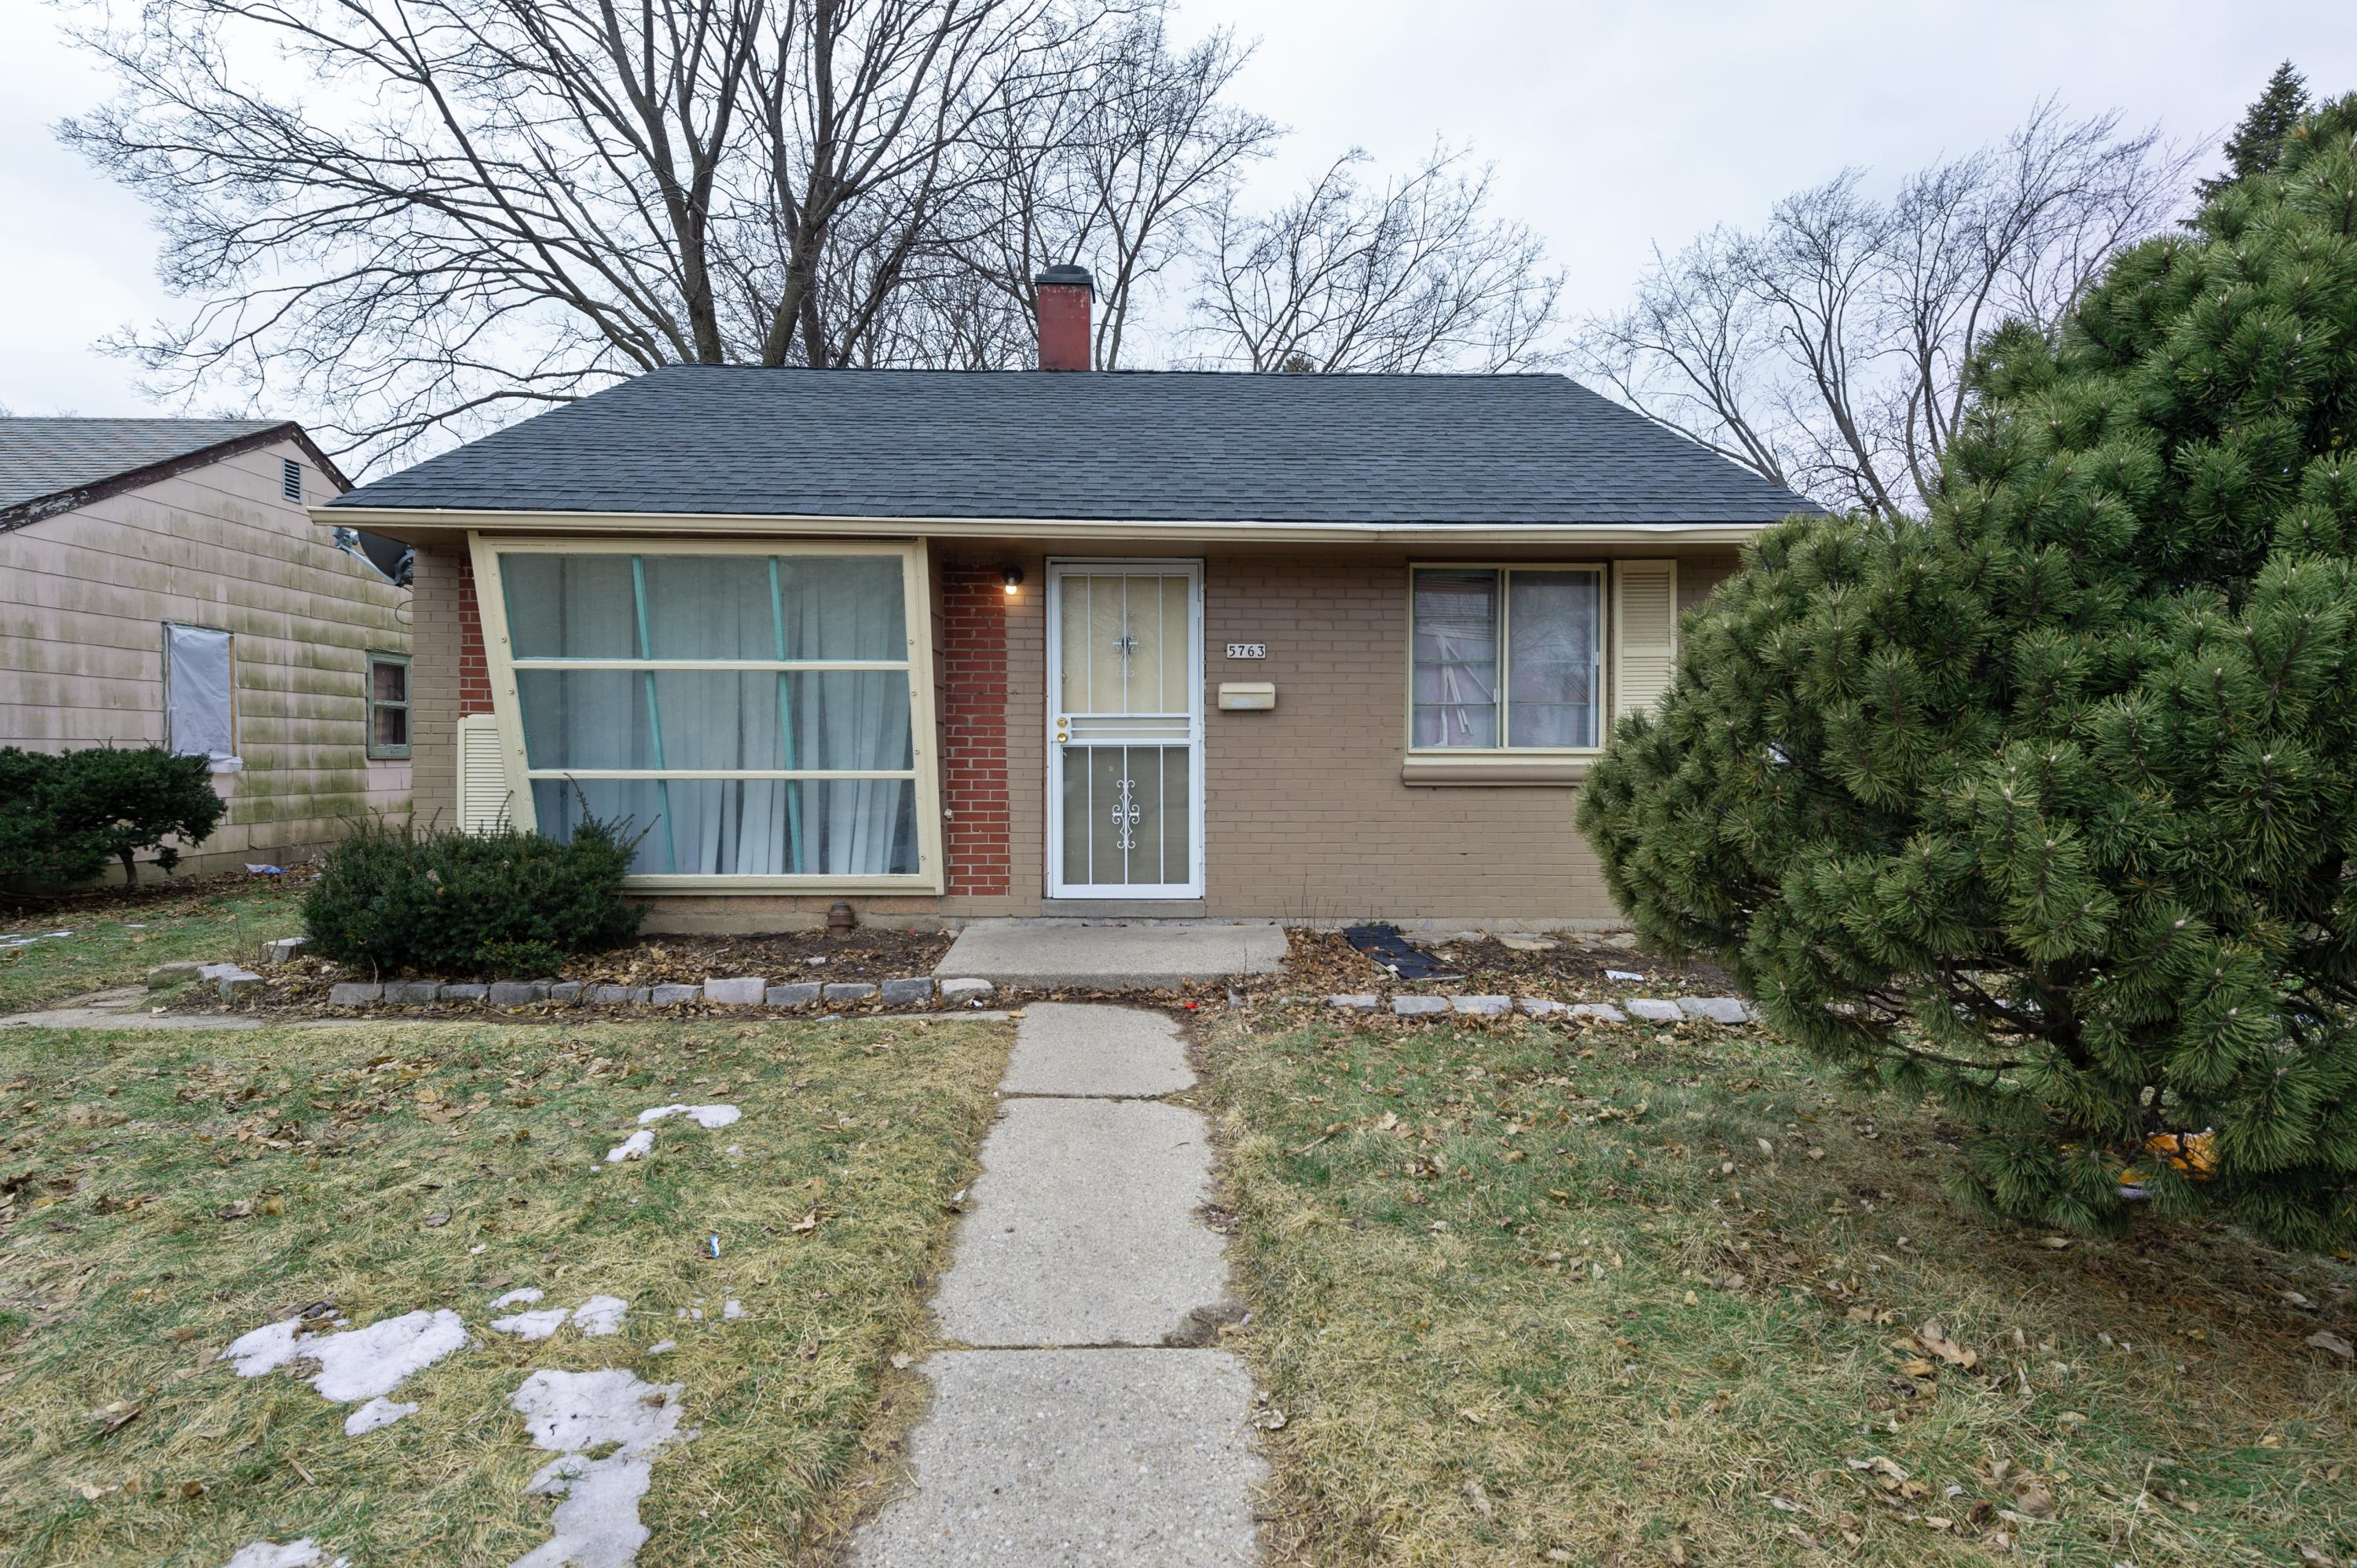 5763 Teutonia Ave, Milwaukee, Wisconsin 53209, 3 Bedrooms Bedrooms, ,1 BathroomBathrooms,Single-Family,For Sale,Teutonia Ave,1626686